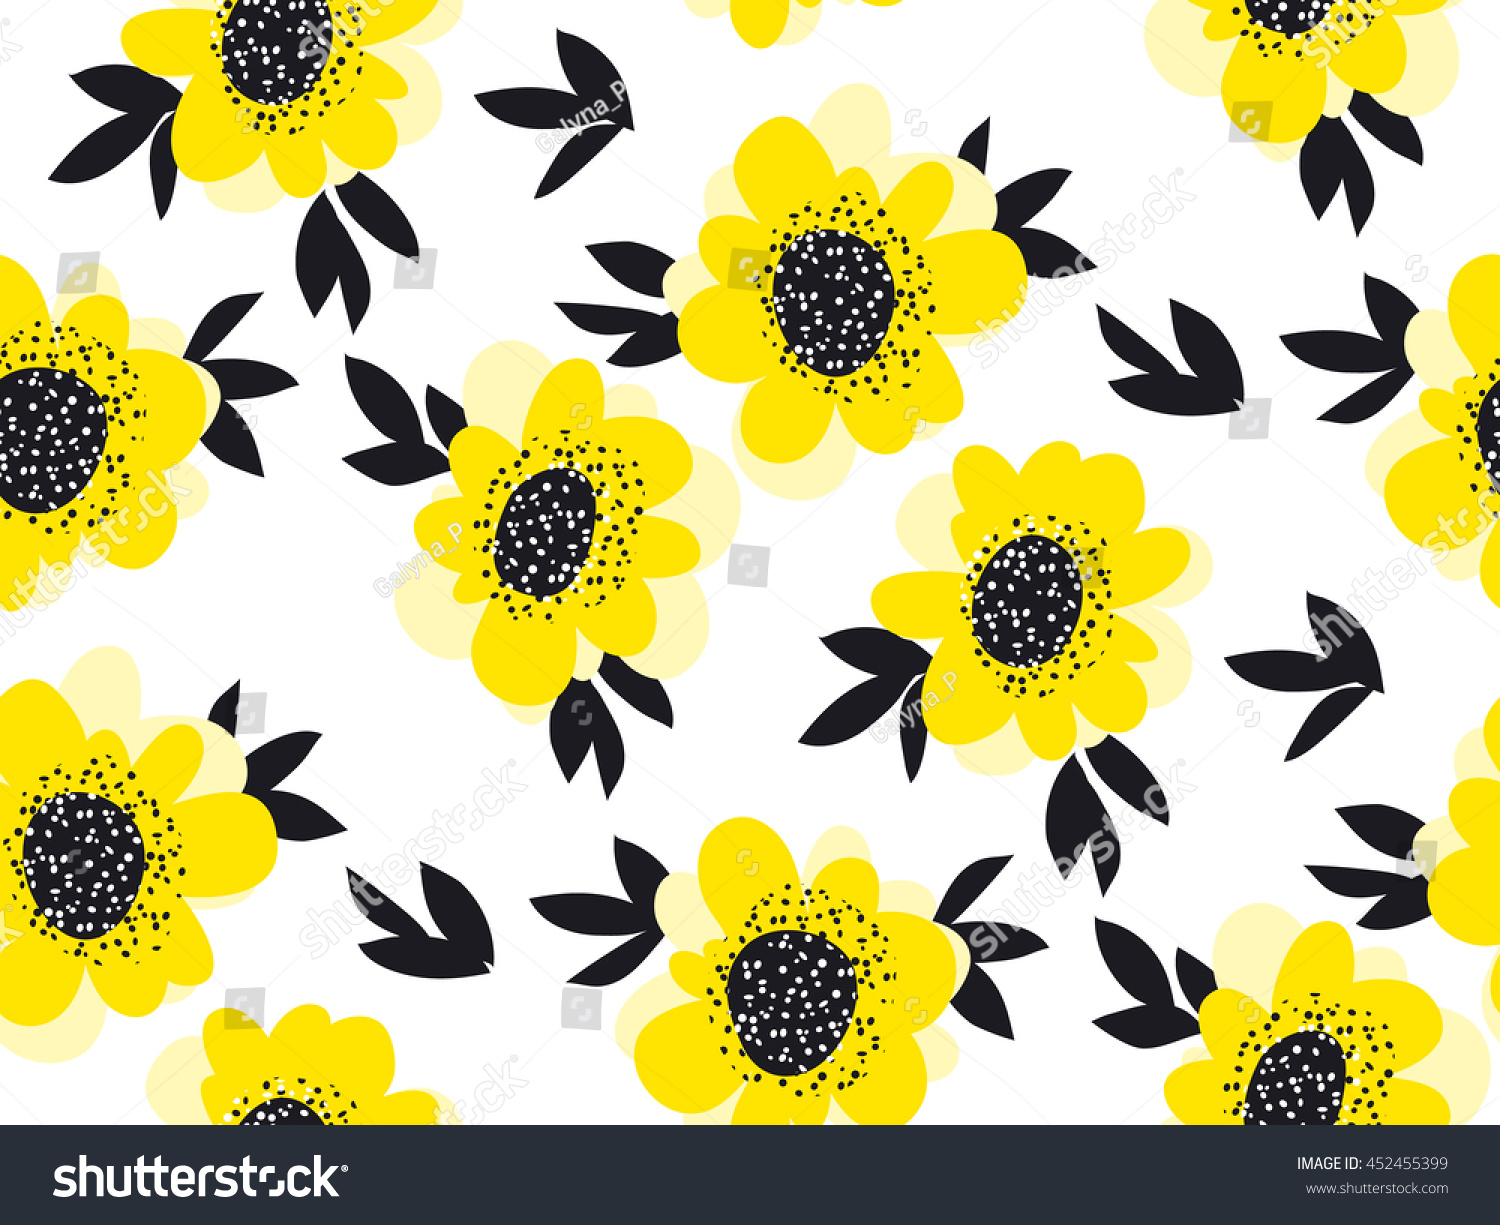 Yellow Color Abstract Camellia Flowers Seamless Stock Vector